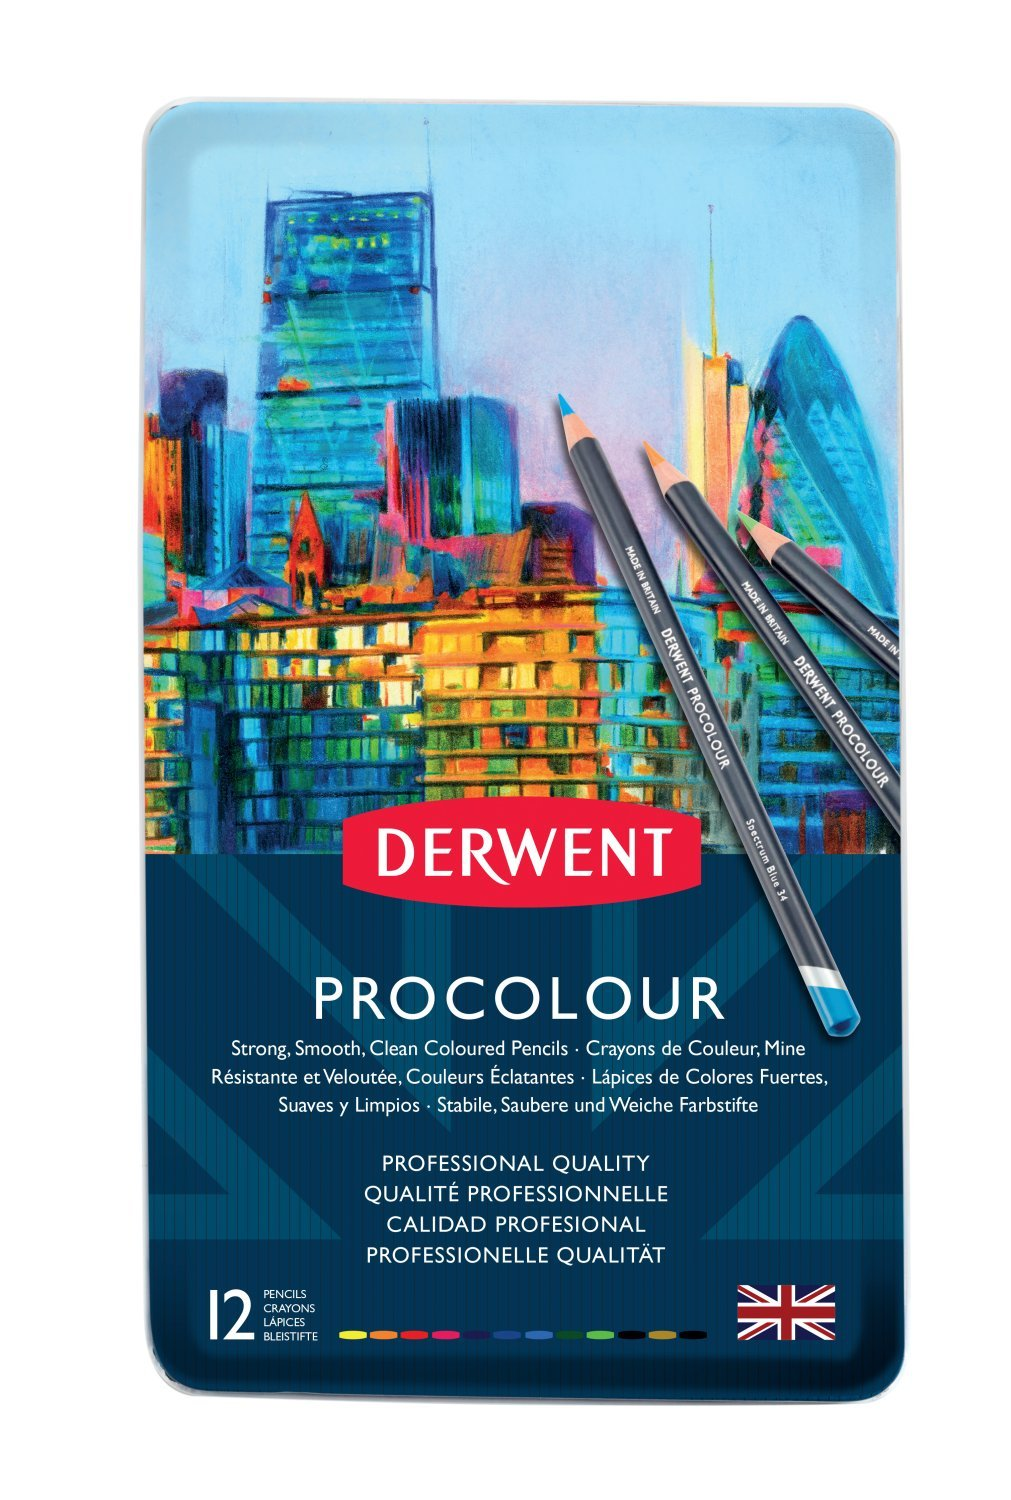 Derwent Procolour Colouring Pencils, Set Of 12, Professional Quality, 2302505 by Amazon